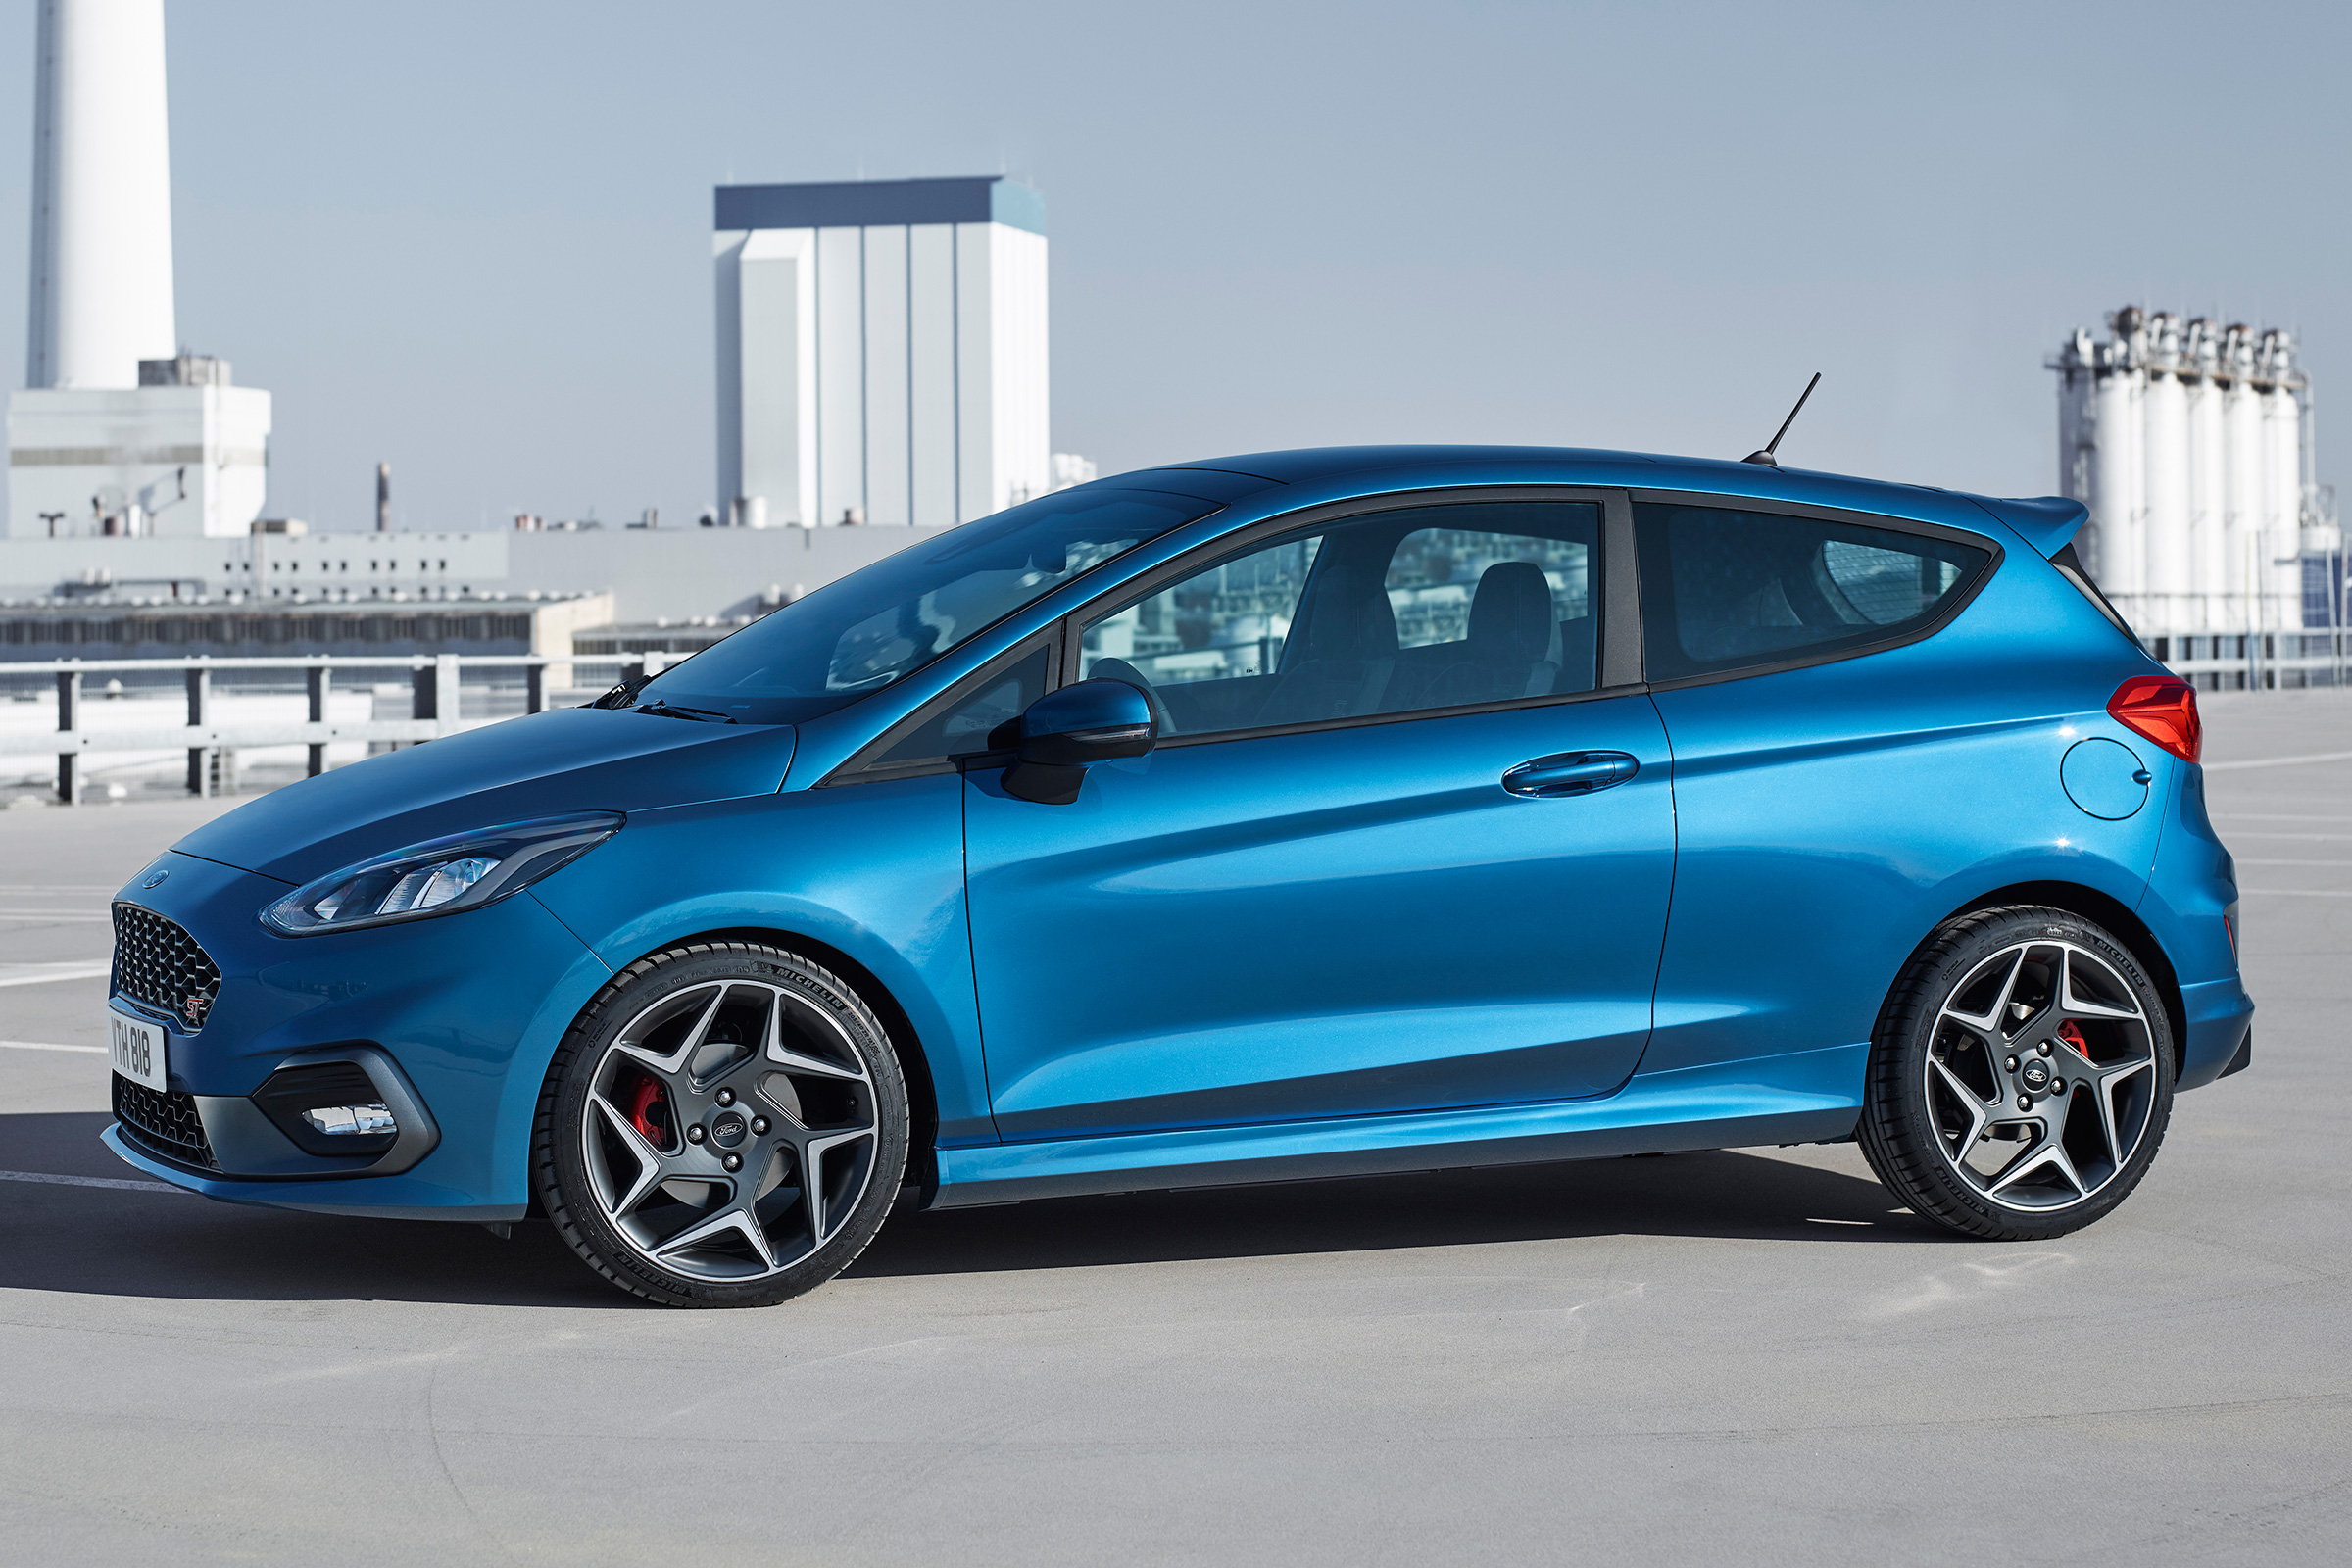 2018 Ford Fiesta ST Exterior Side And Front (Photo 7 of 14)